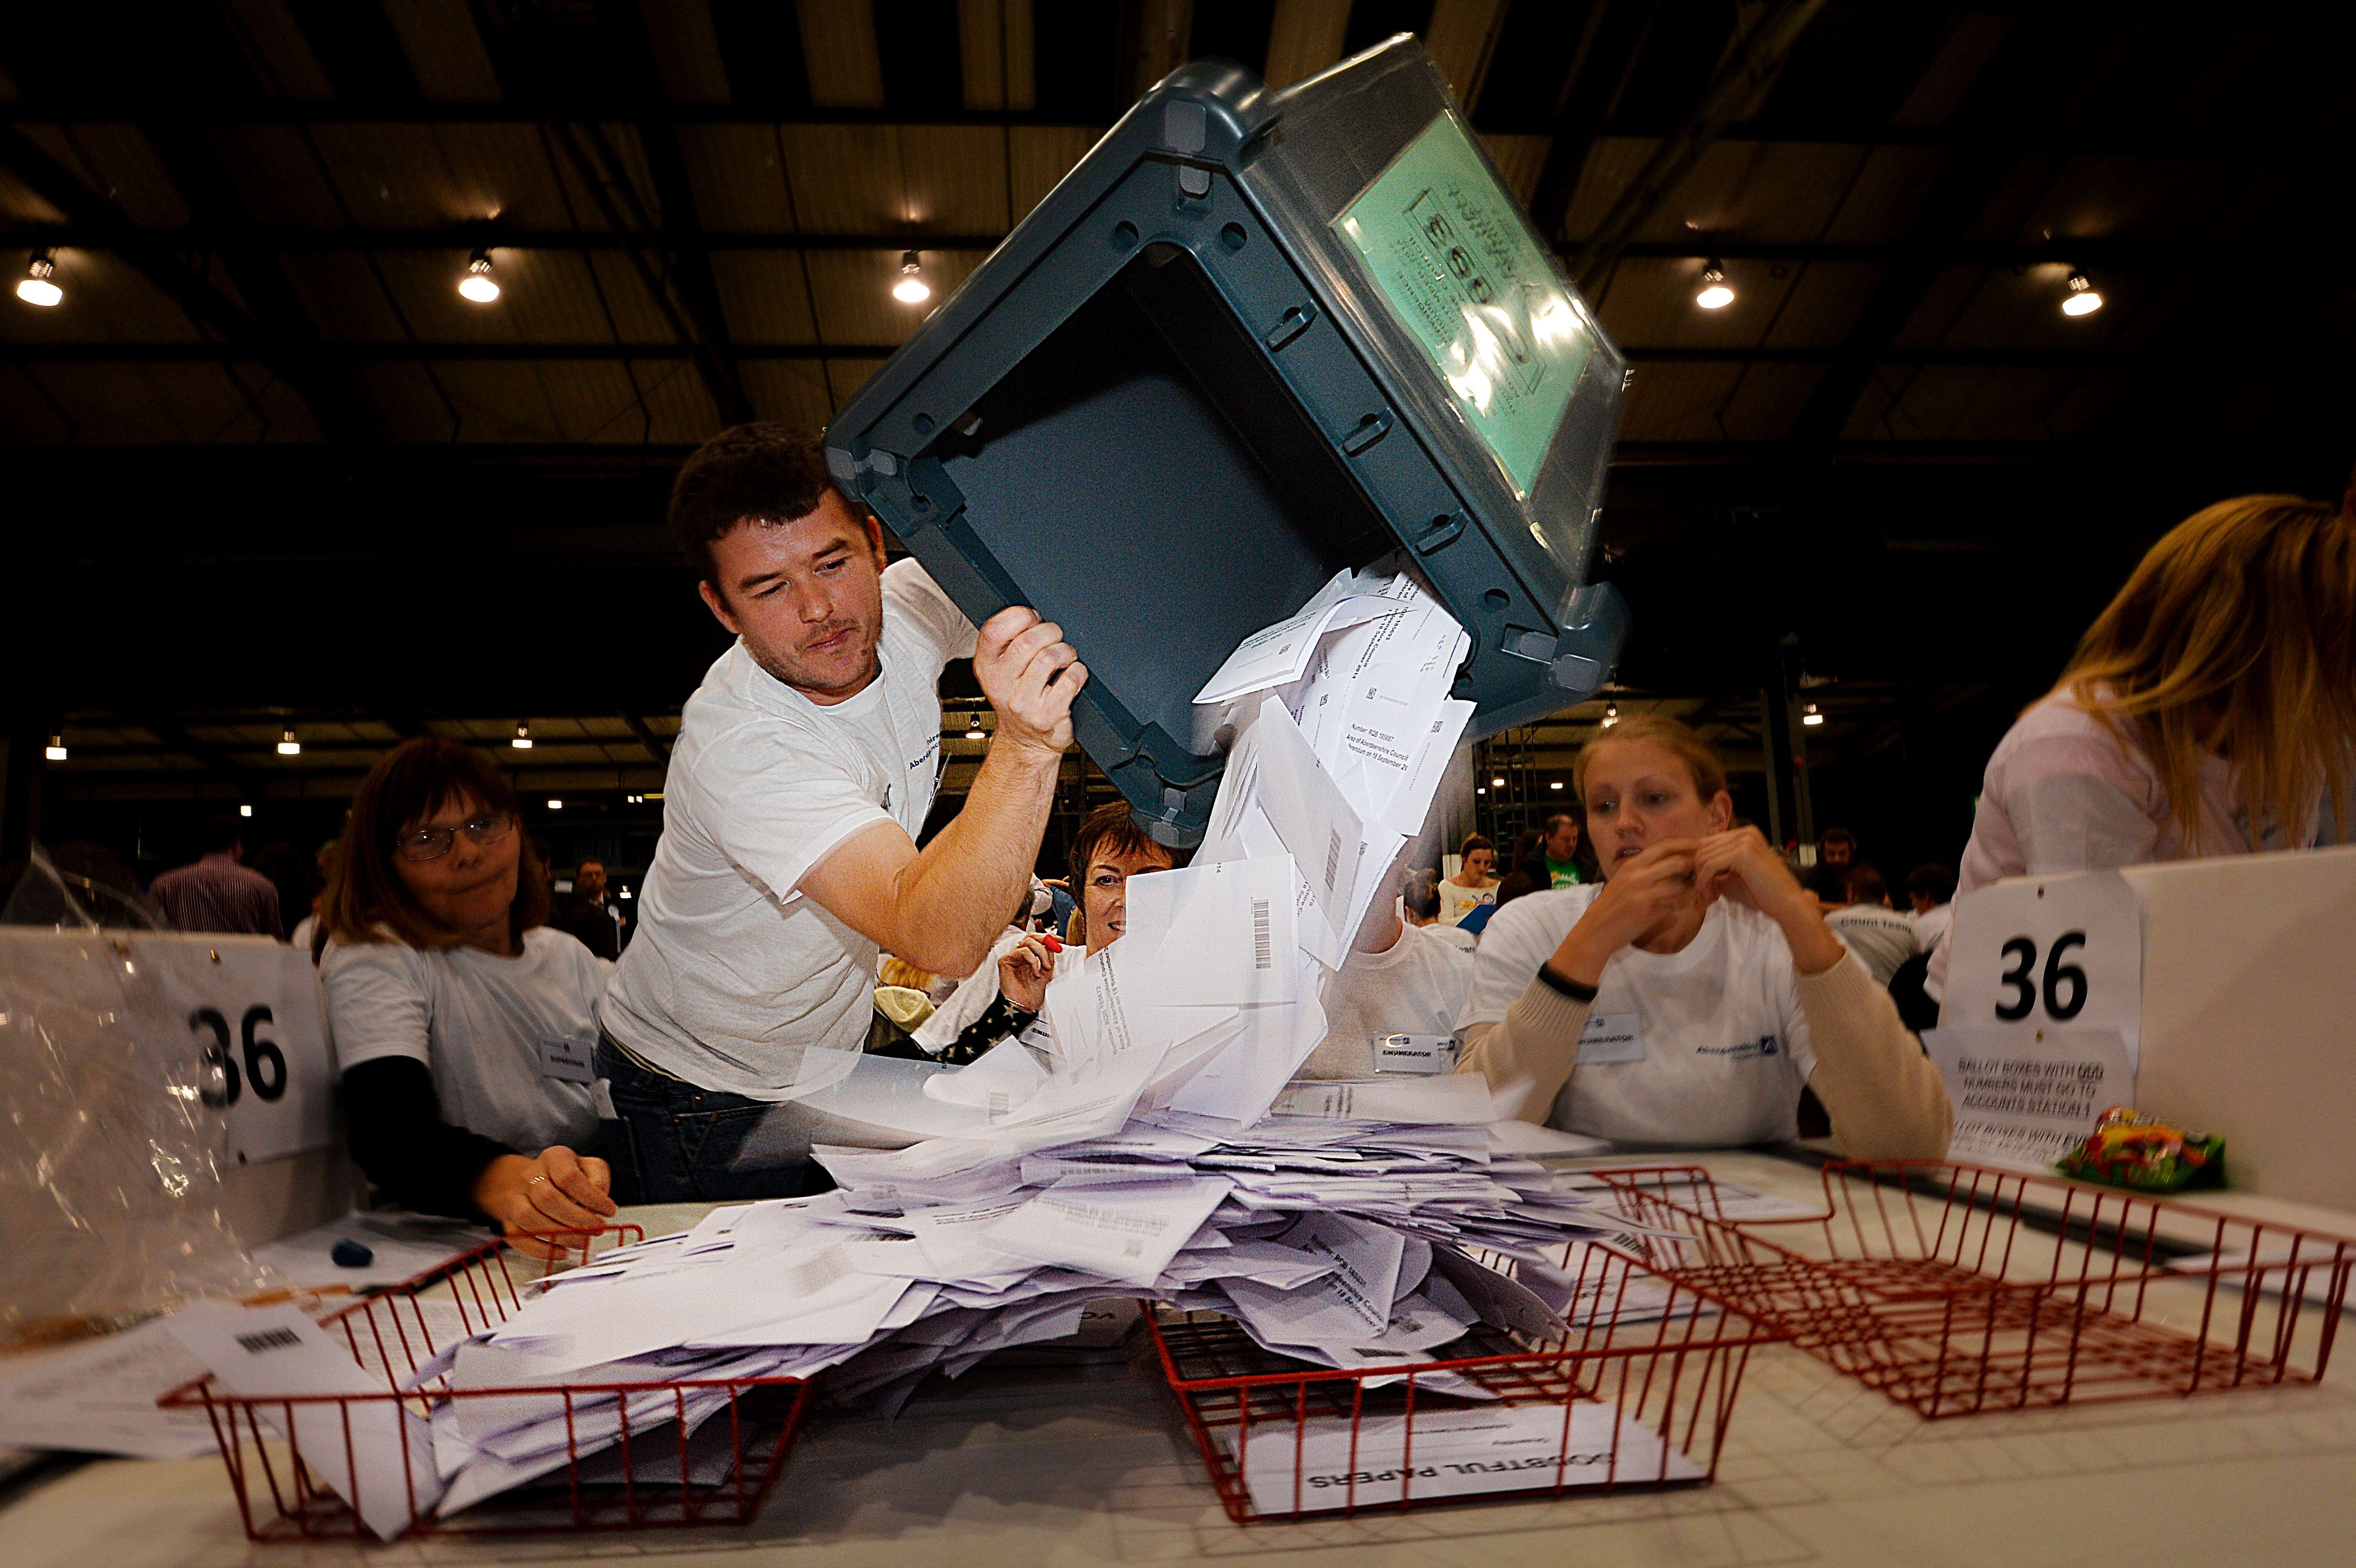 A worker tips out a ballot box in the Aberdeen Exhibition and Conference Centre in Aberdeen, Scotland, on Sept. 18, 2014, immediately after the polls close in the referendum on Scotland's independence